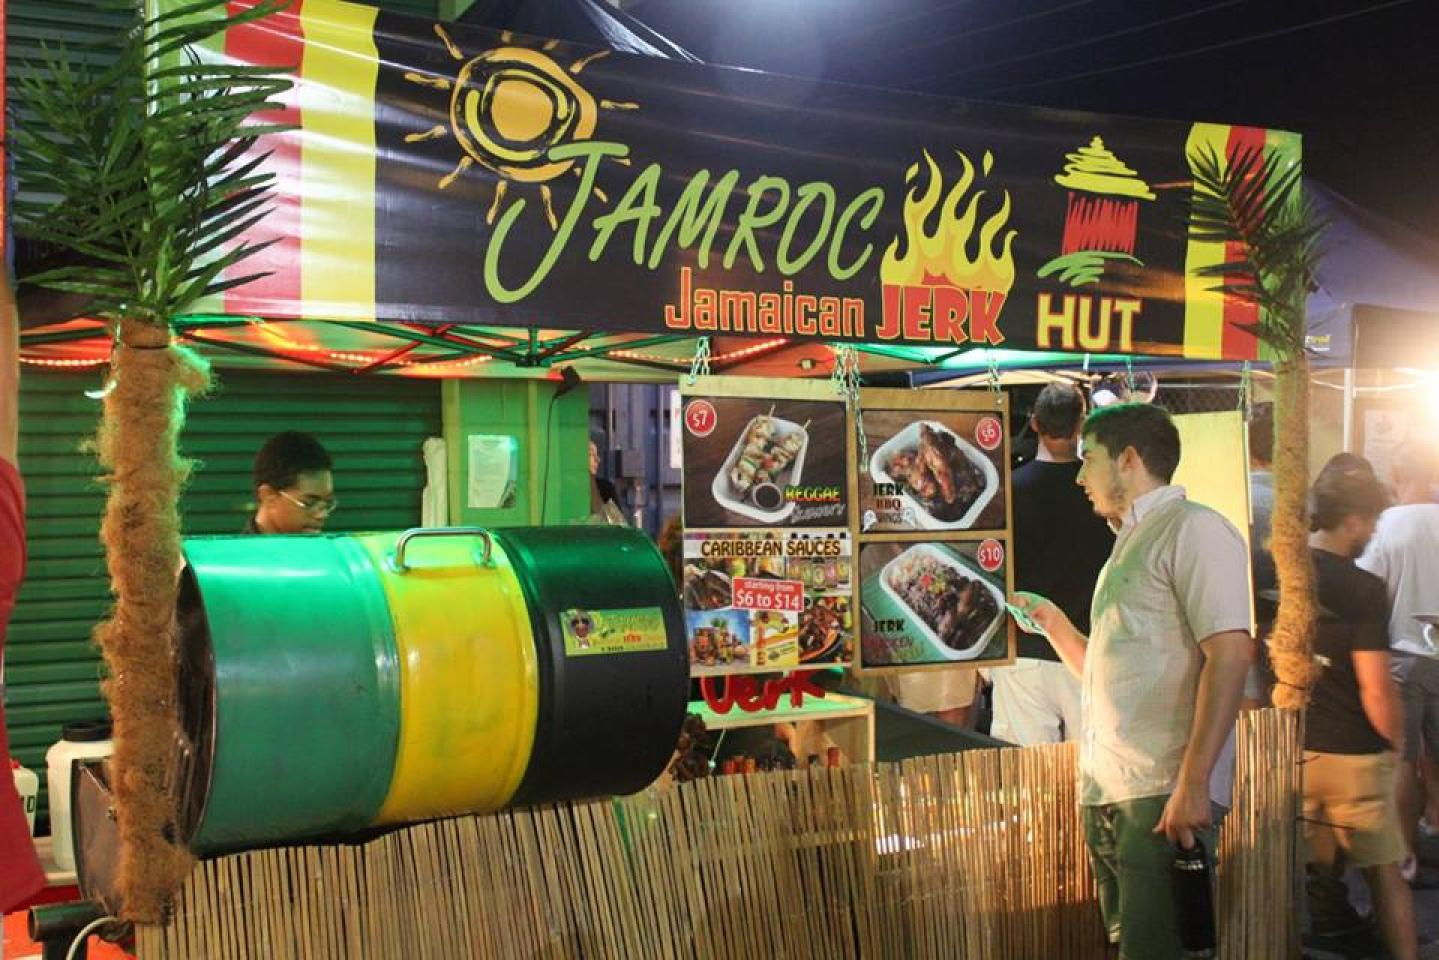 JAMROC jerk hut at the markets miami marketta